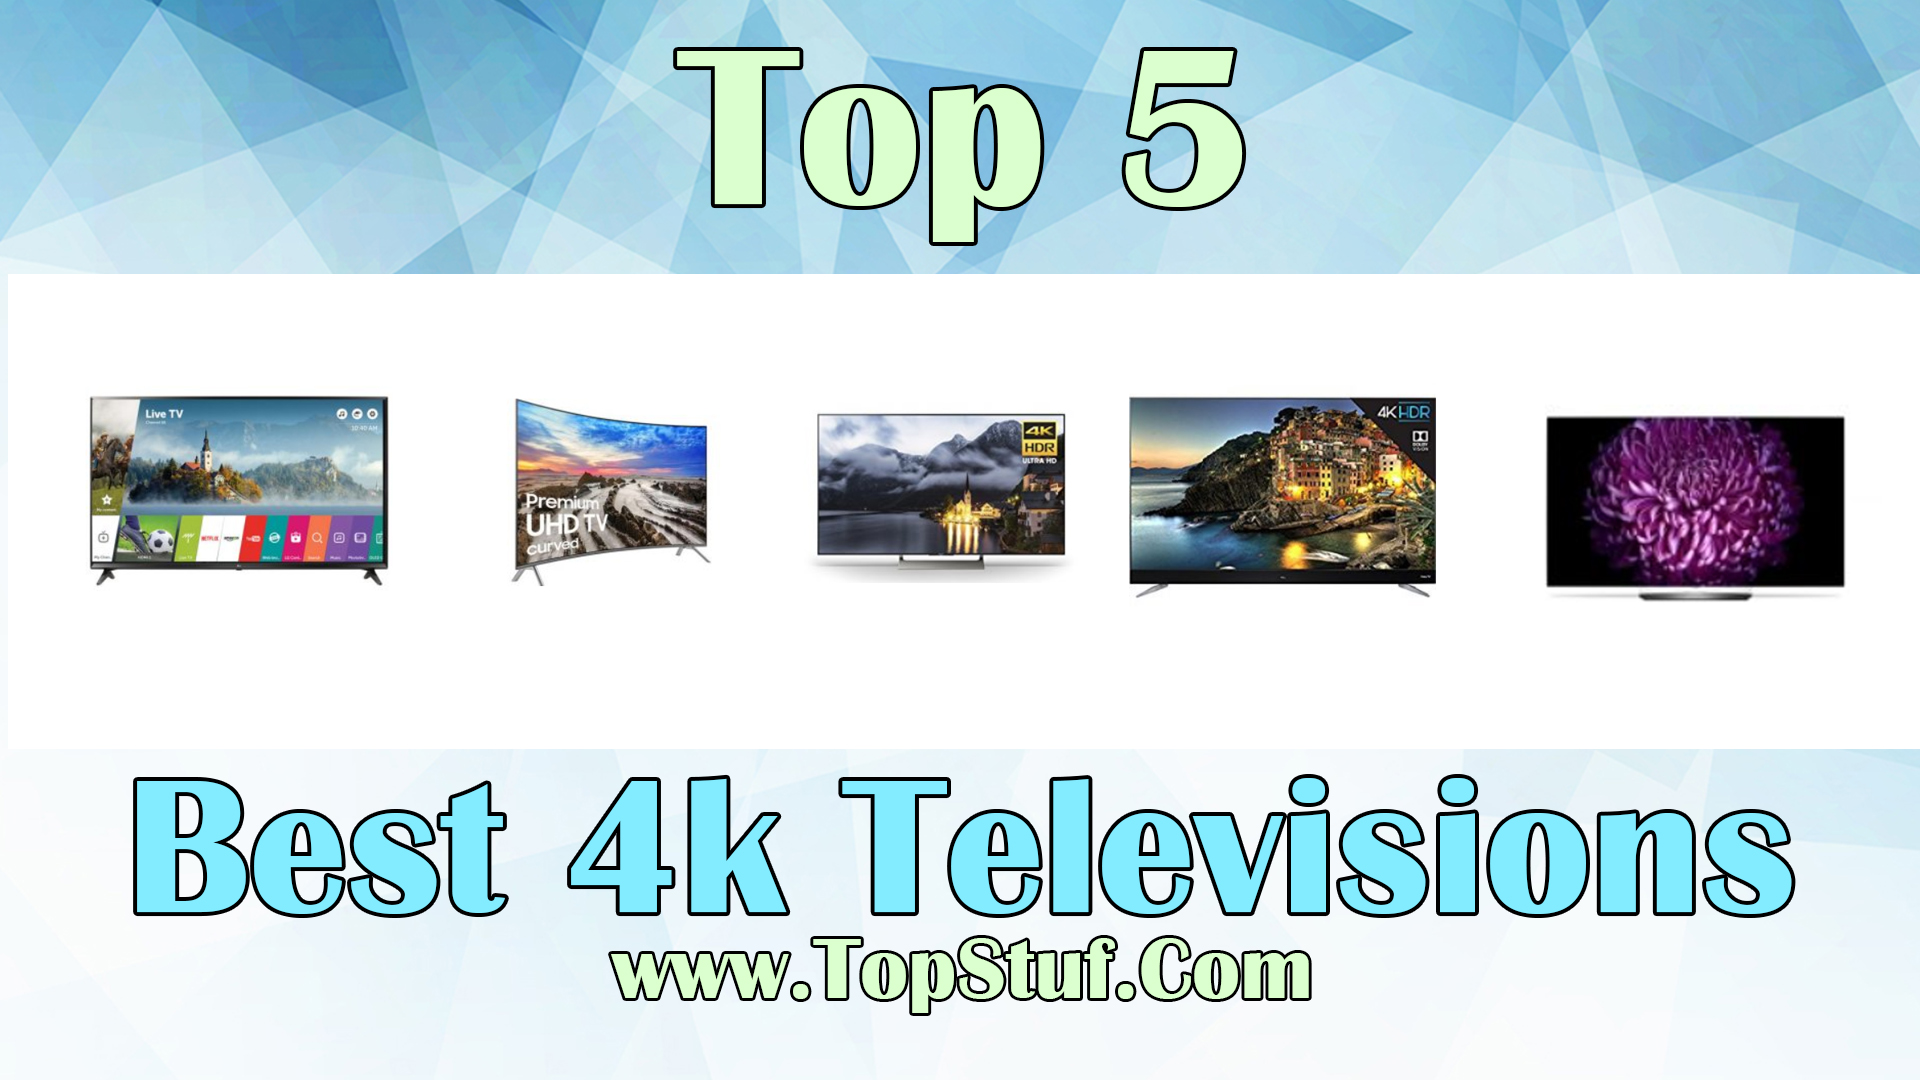 Best 4k Televisions